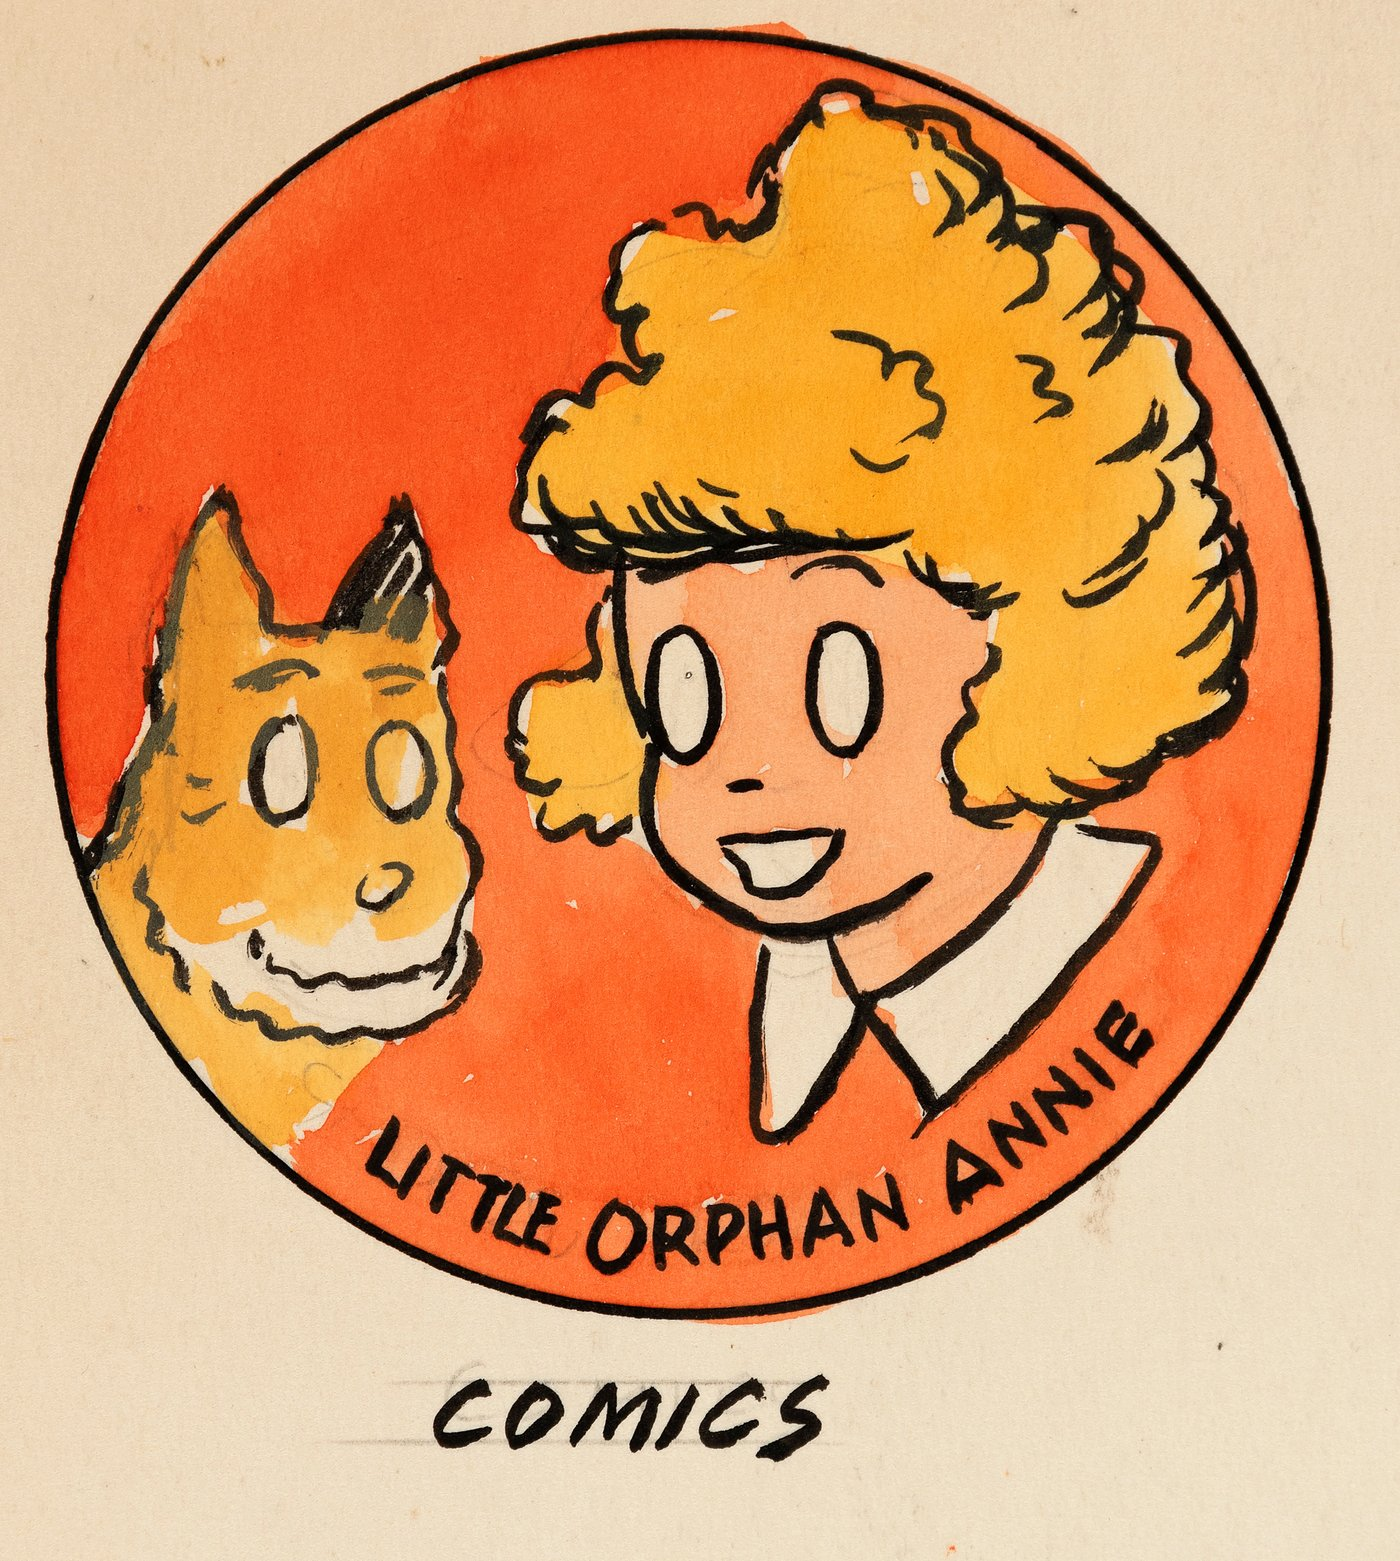 Image result for annie orphan comic